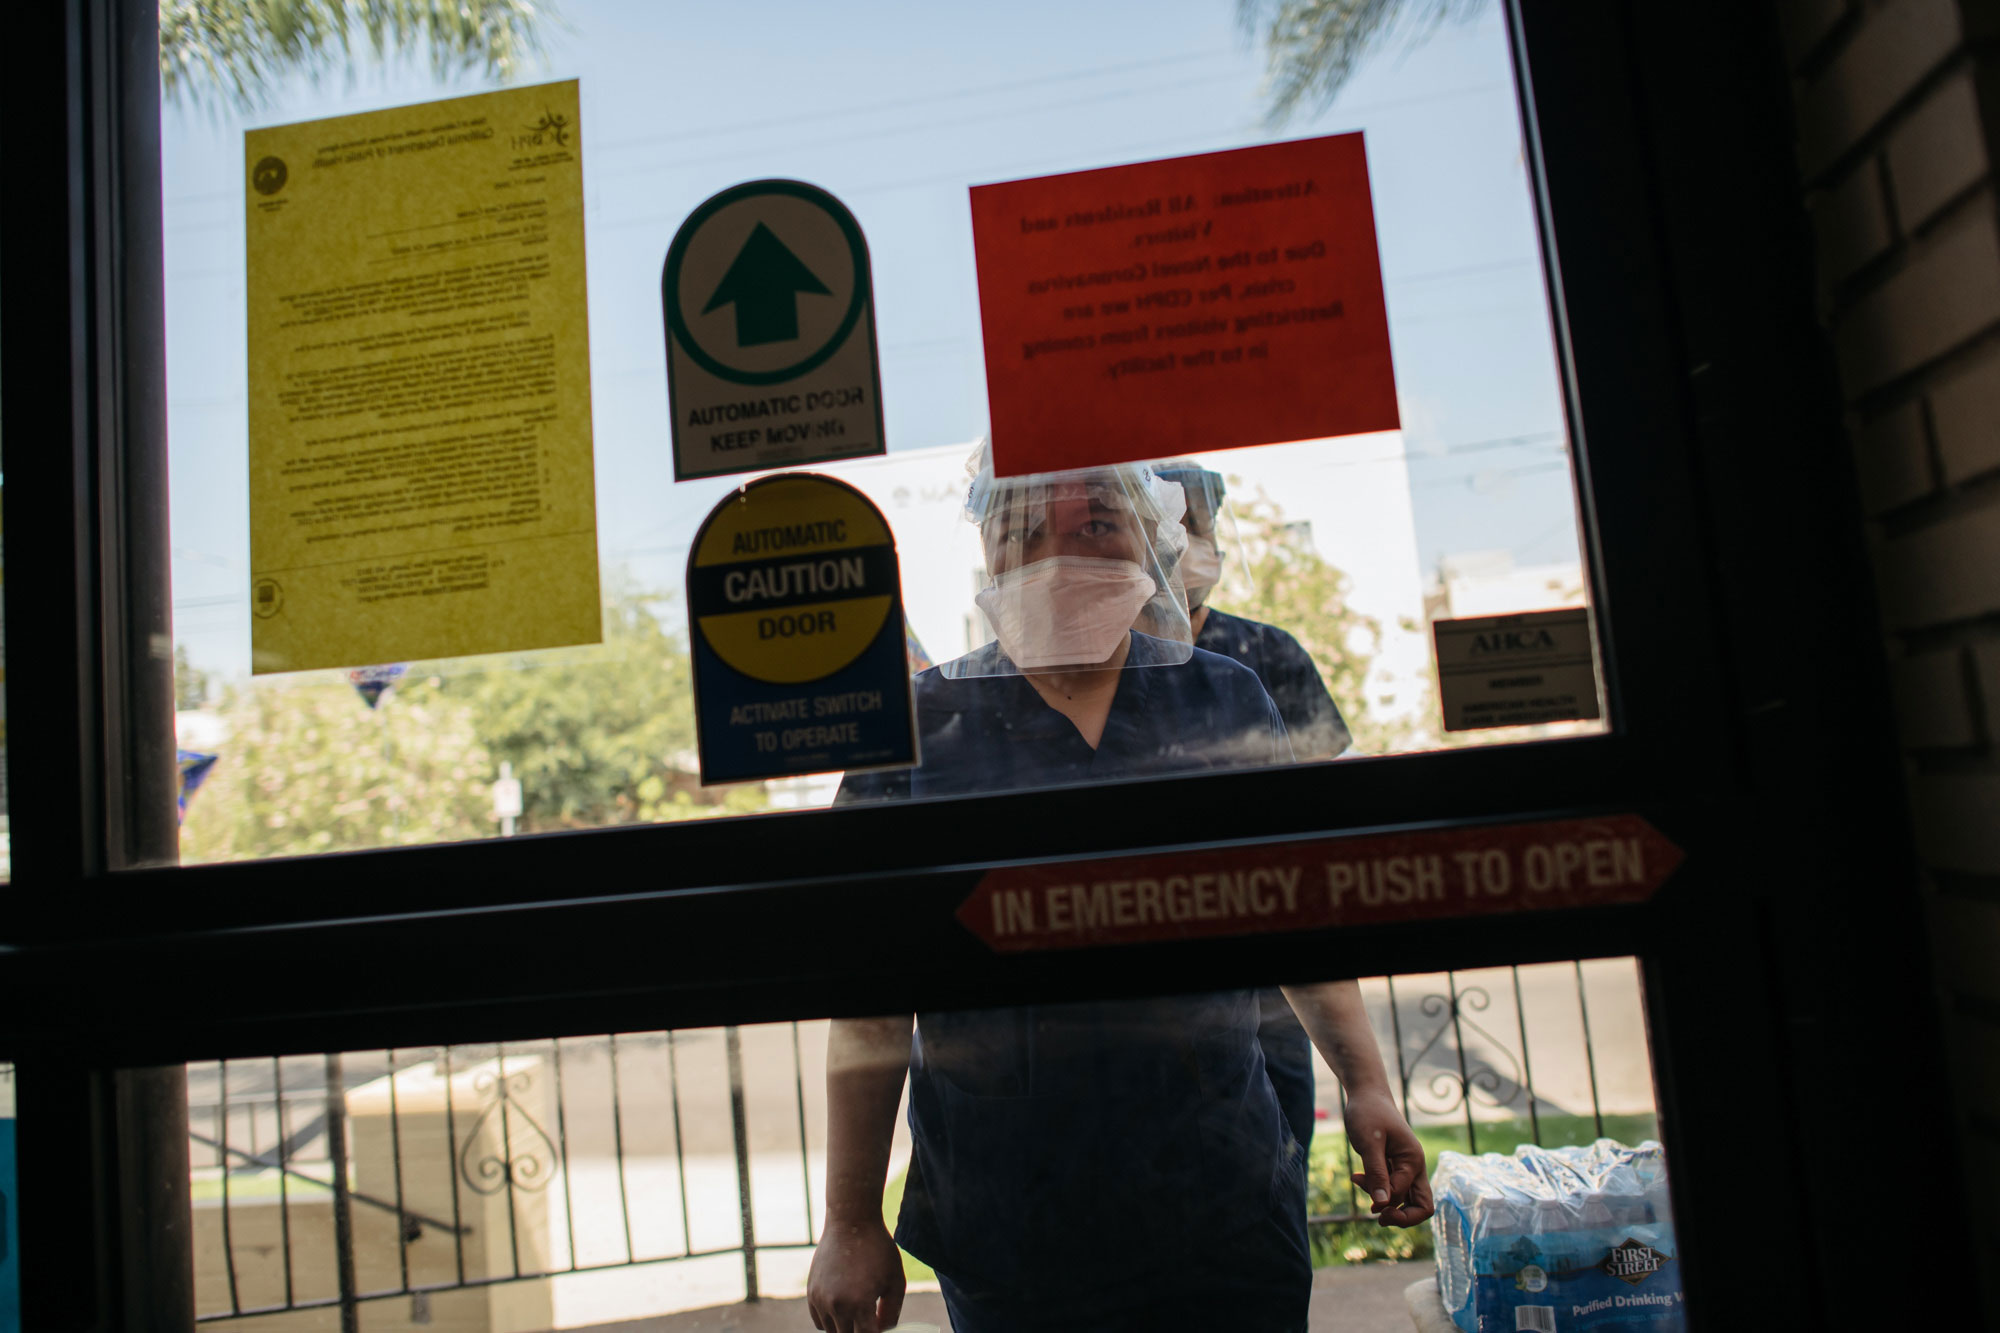 Staff members wait to be let in during shift change at Alexandria Care Center in Los Angeles.